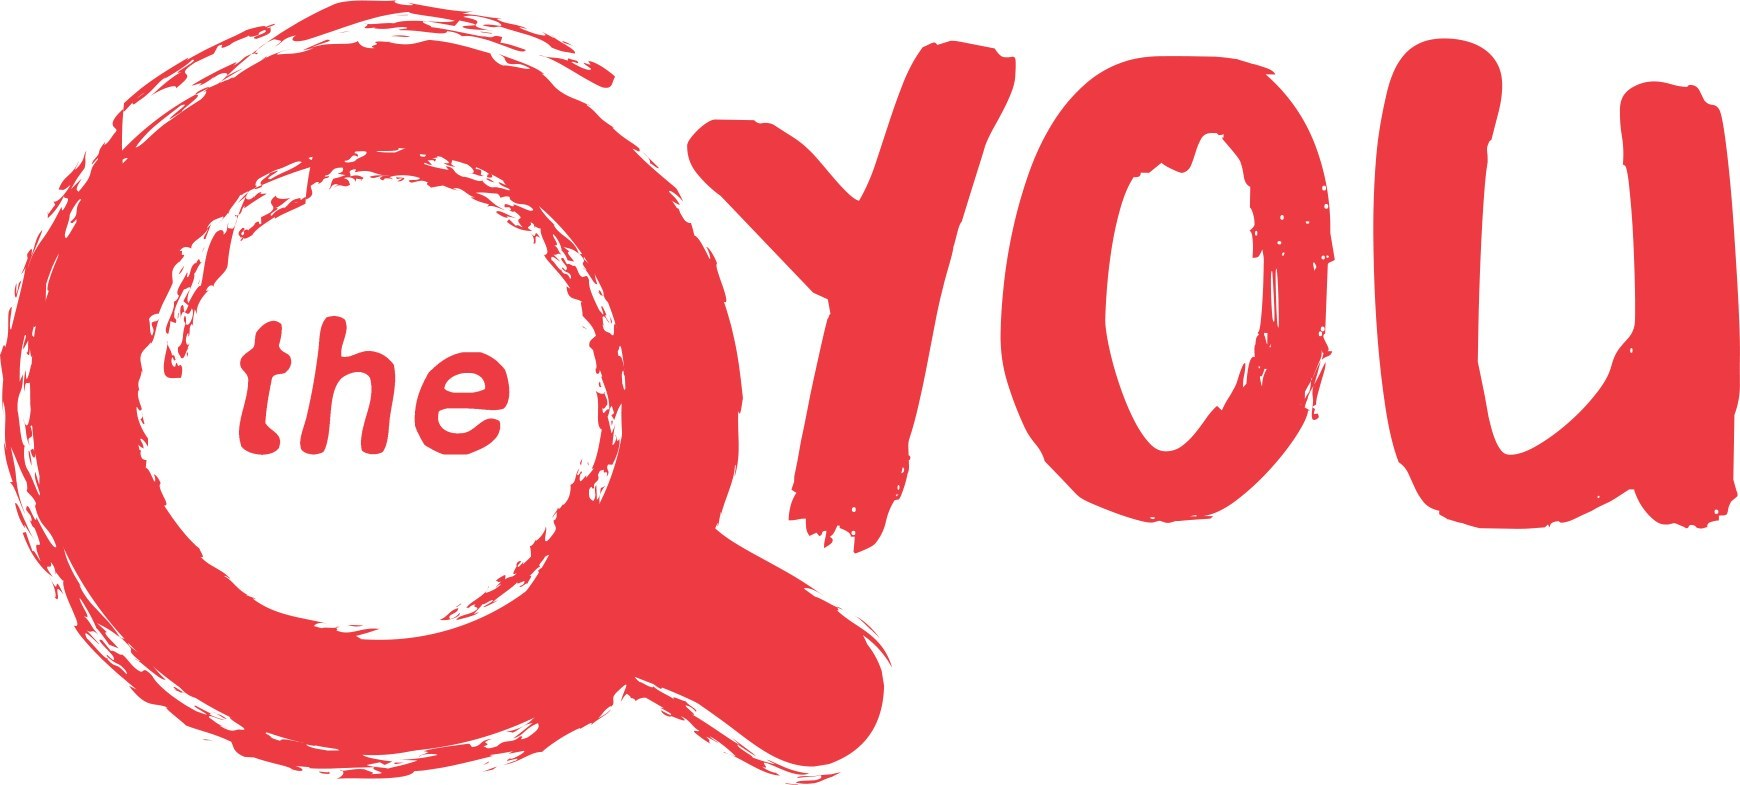 QYOU Media to Complete $1